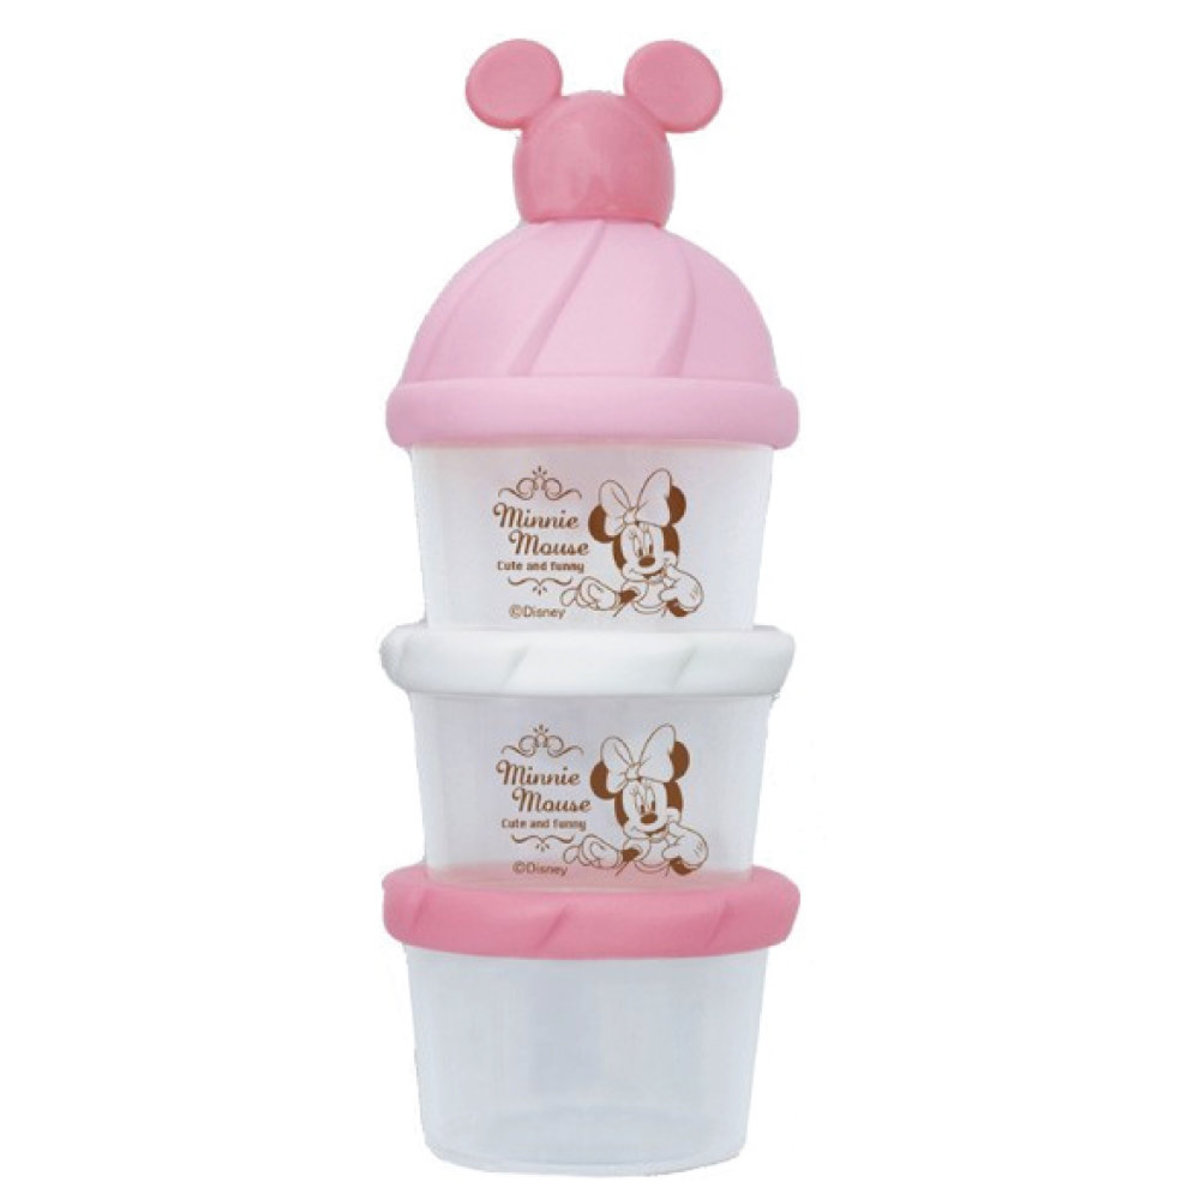 Minnie Mouse three-tiered milk powder or food box (Parallel Import)